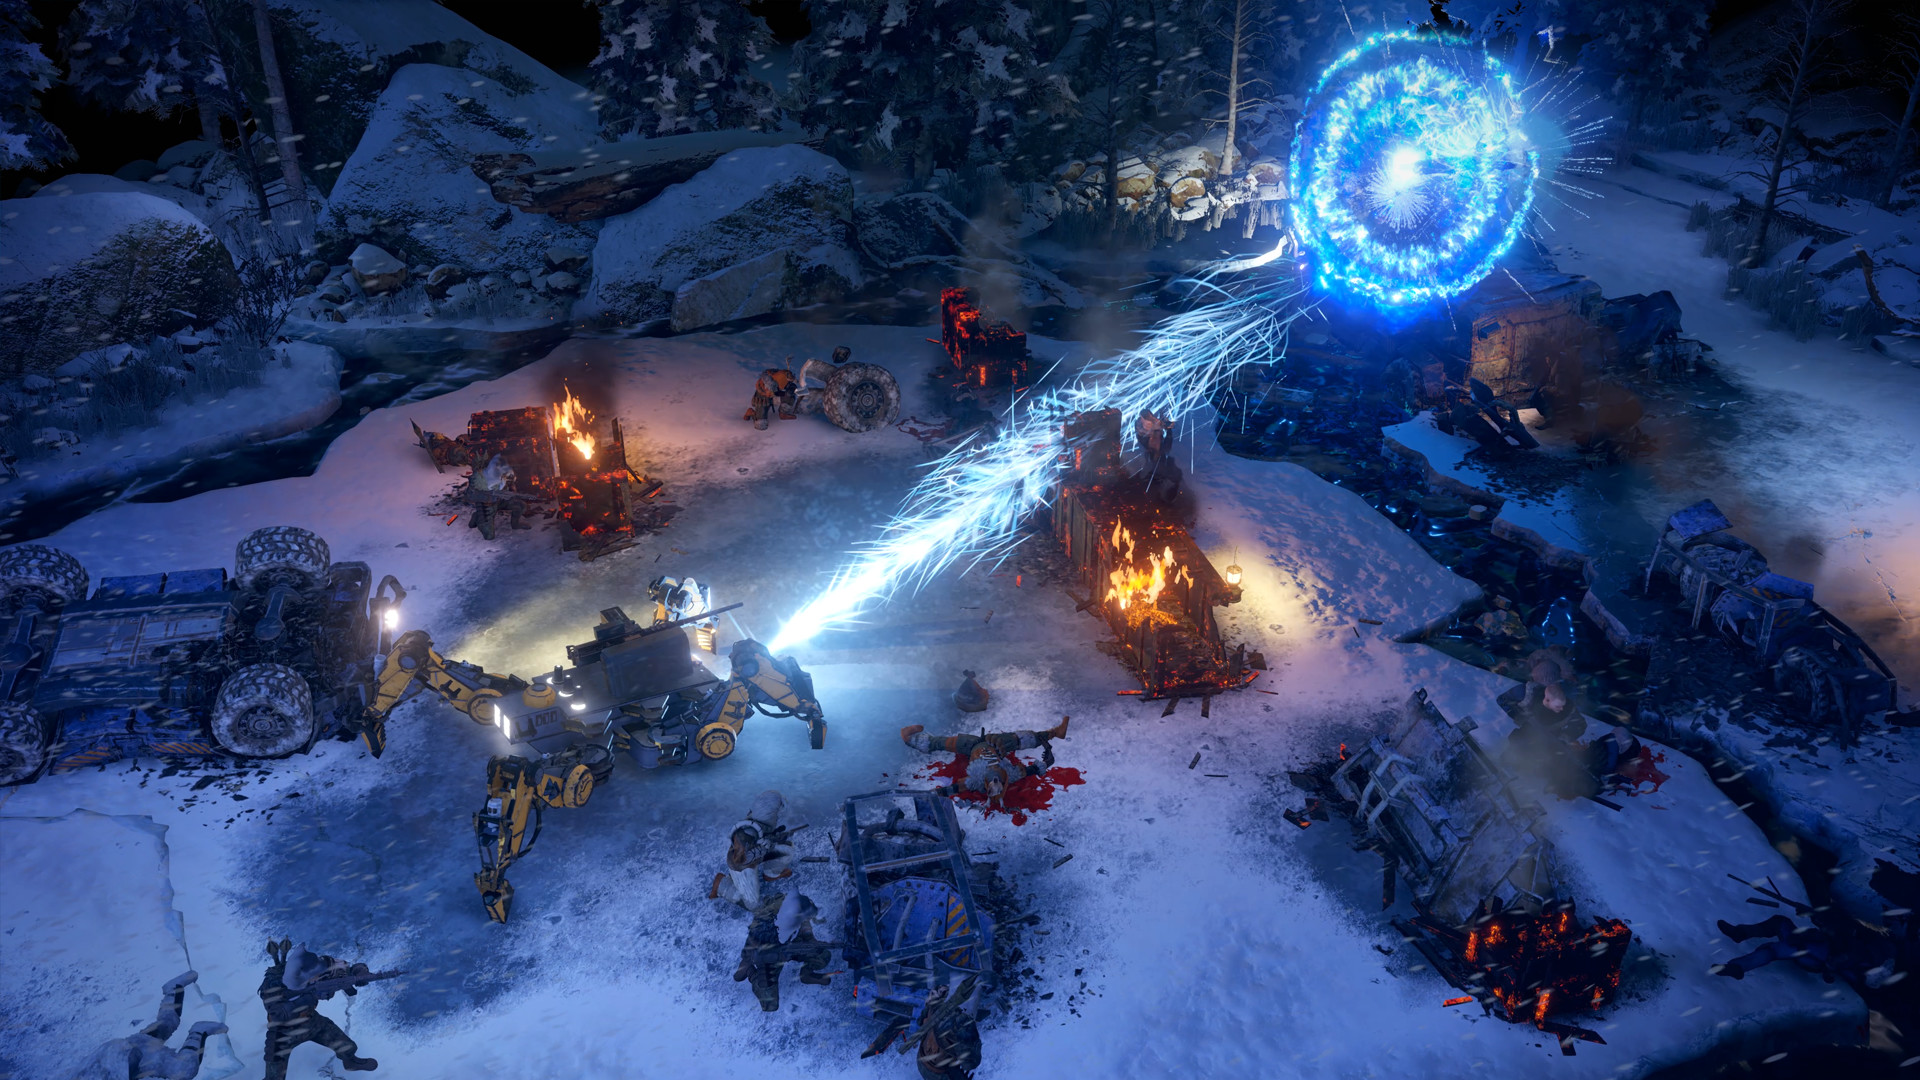 Best PS4 games 2020 - Wasteland 3